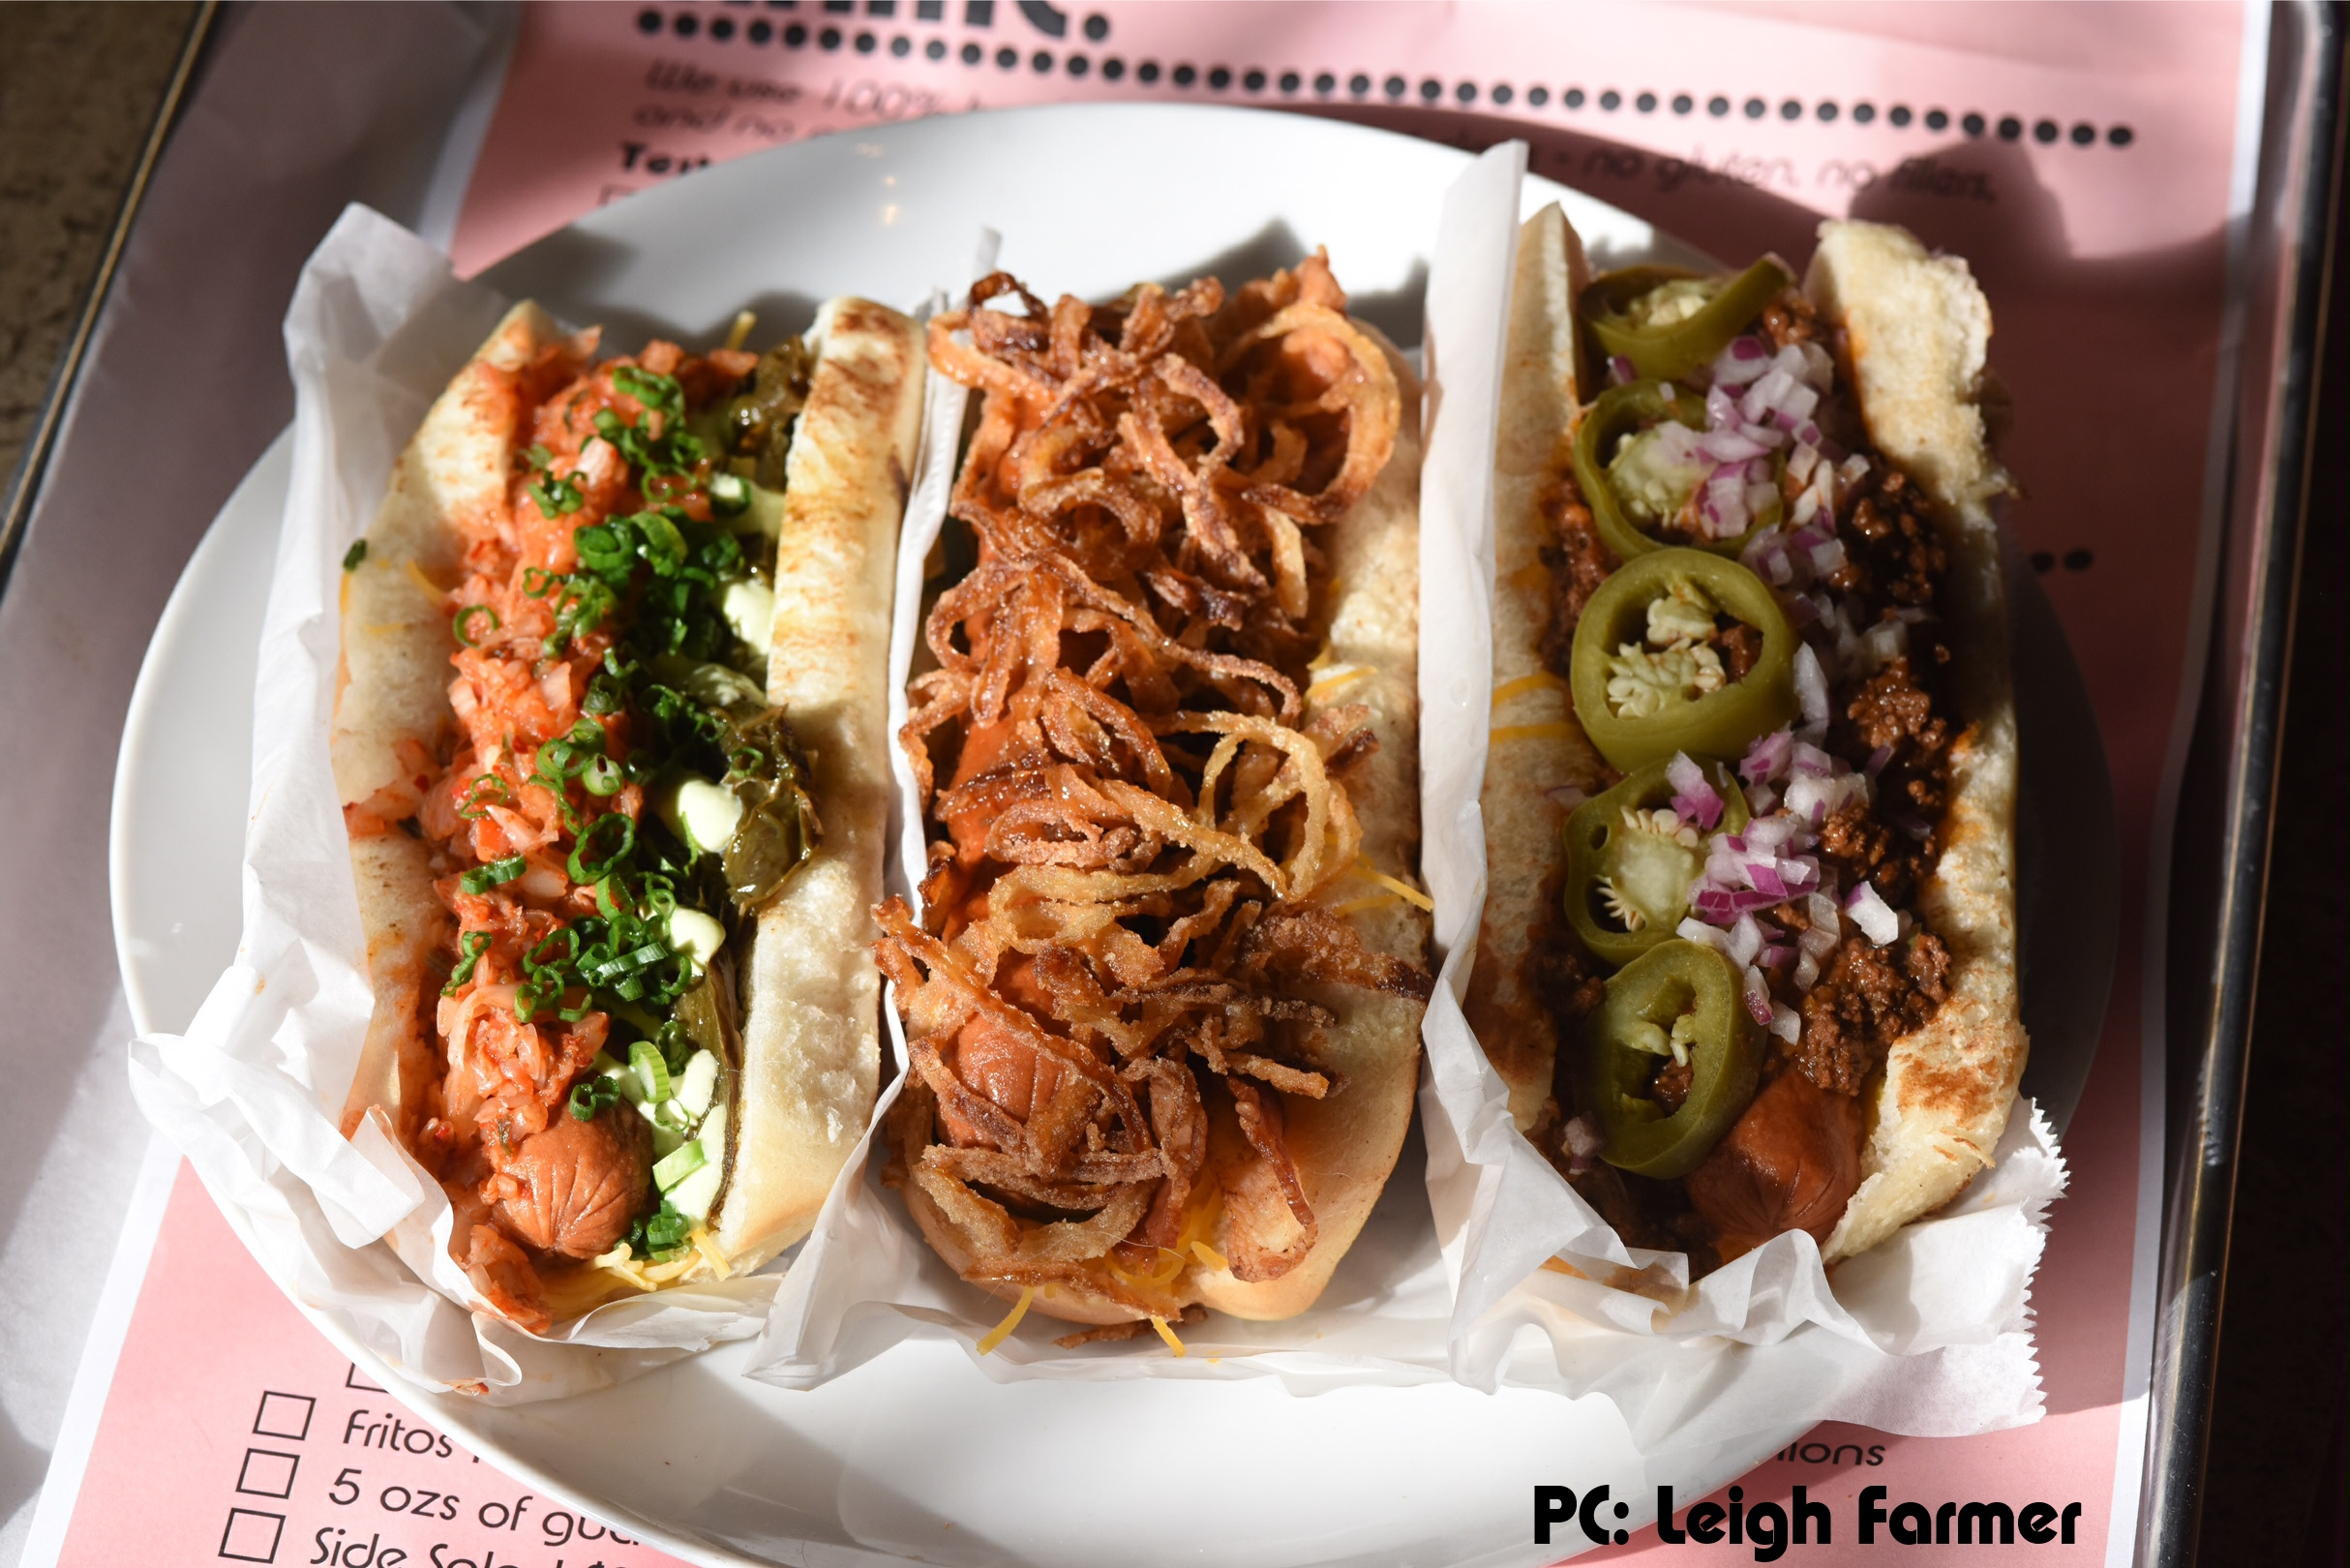 Image of 3 Hot Dogs.jpg